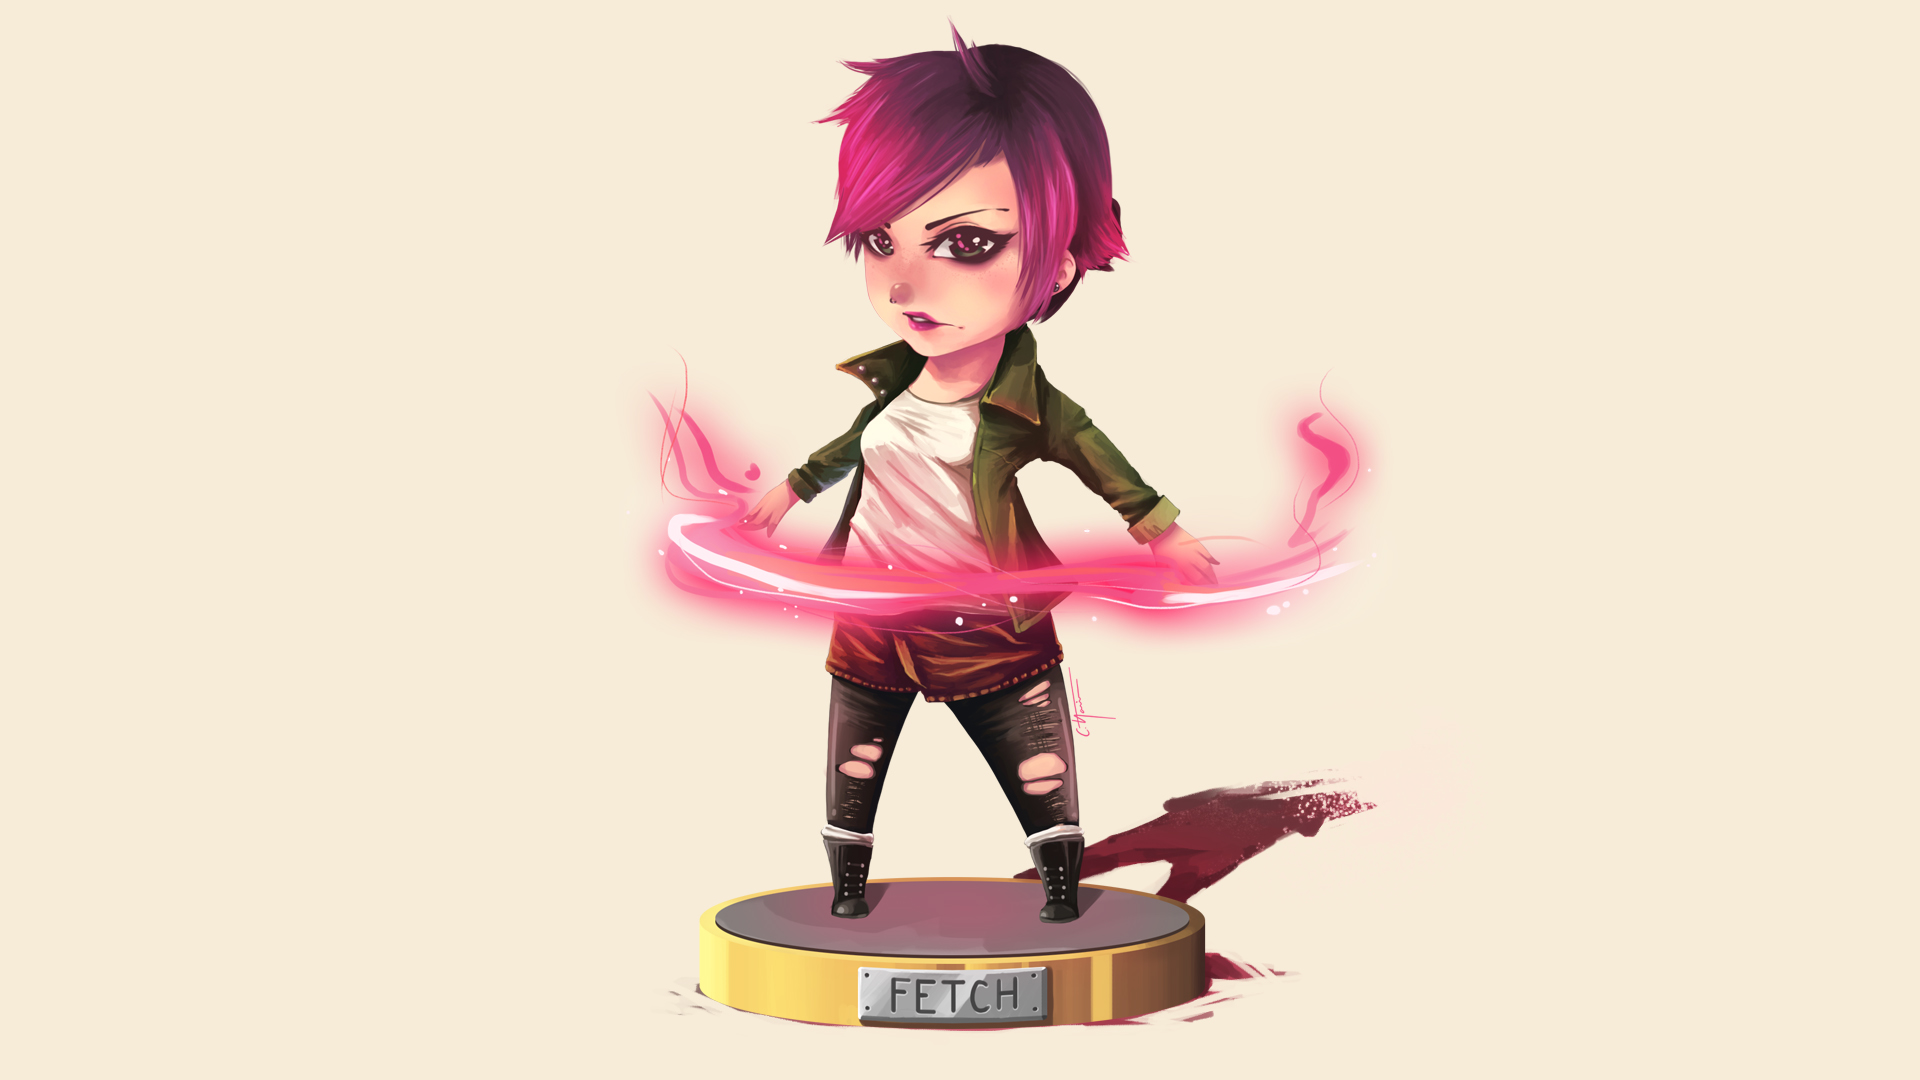 Fetch - Infamous First Light